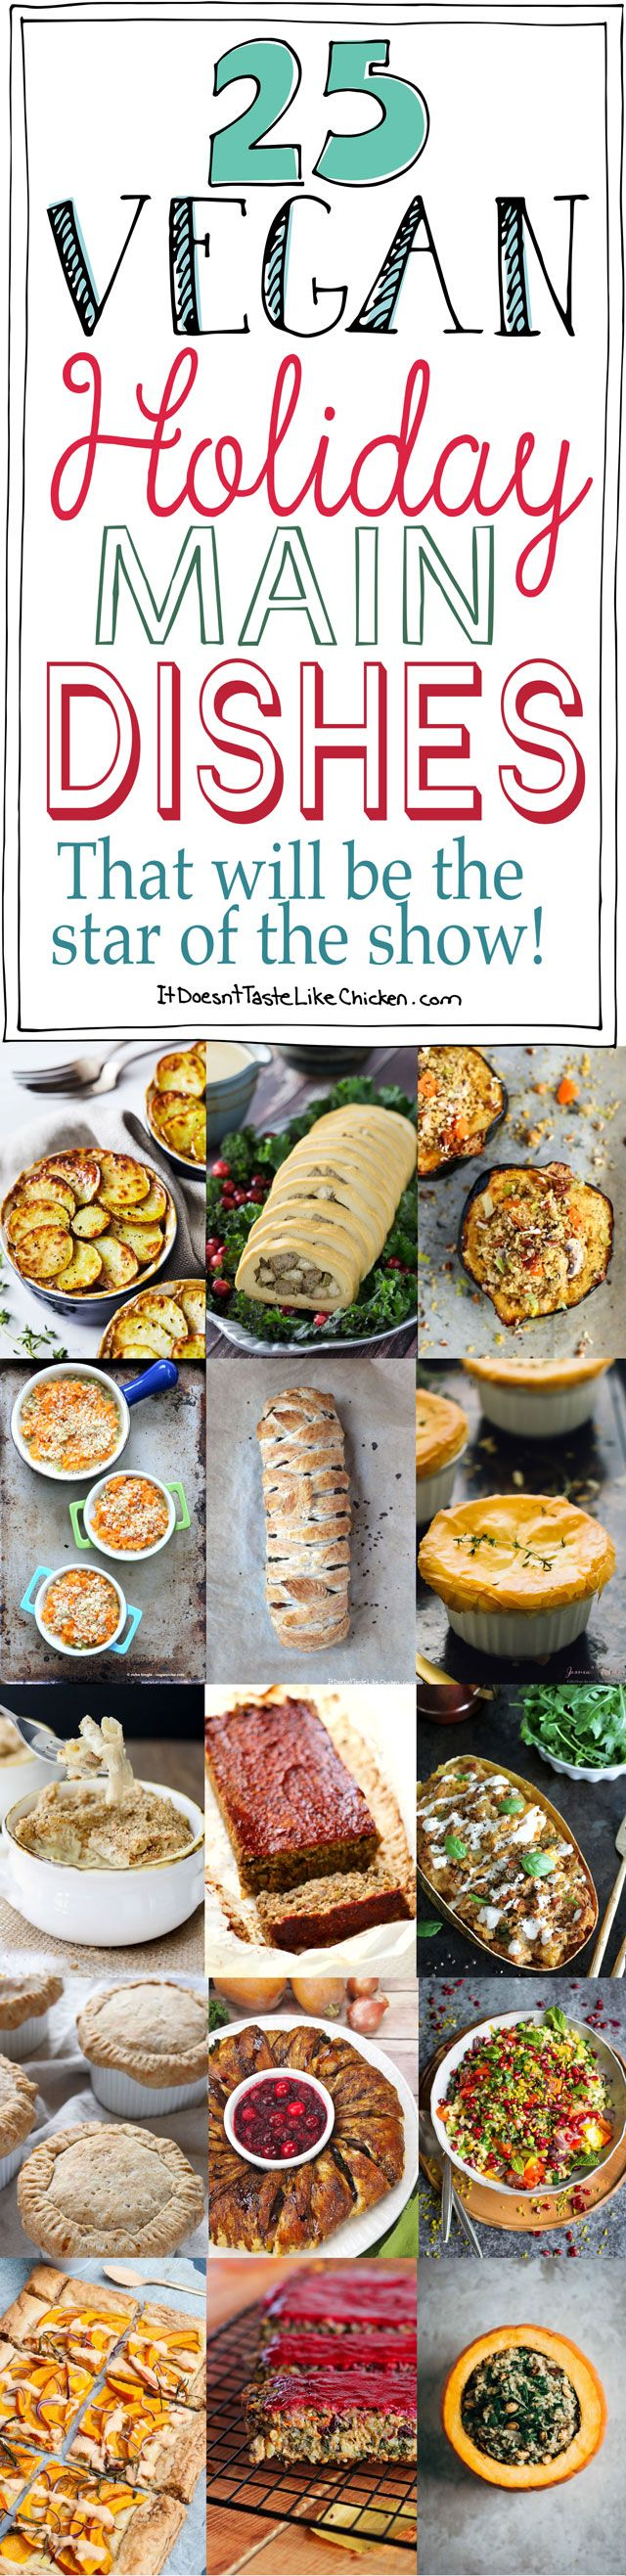 25 Vegan Holiday Main Dishes That Will be the Star of the Show! Perfect centerpiece dishes for Thanksgiving and Christmas. Lentil loaves, stuffed squash, pot pies, shepherd's pie, tarts, wellingtons, and all things totally centerpiece worthy. #itdoesnttastelikechicken